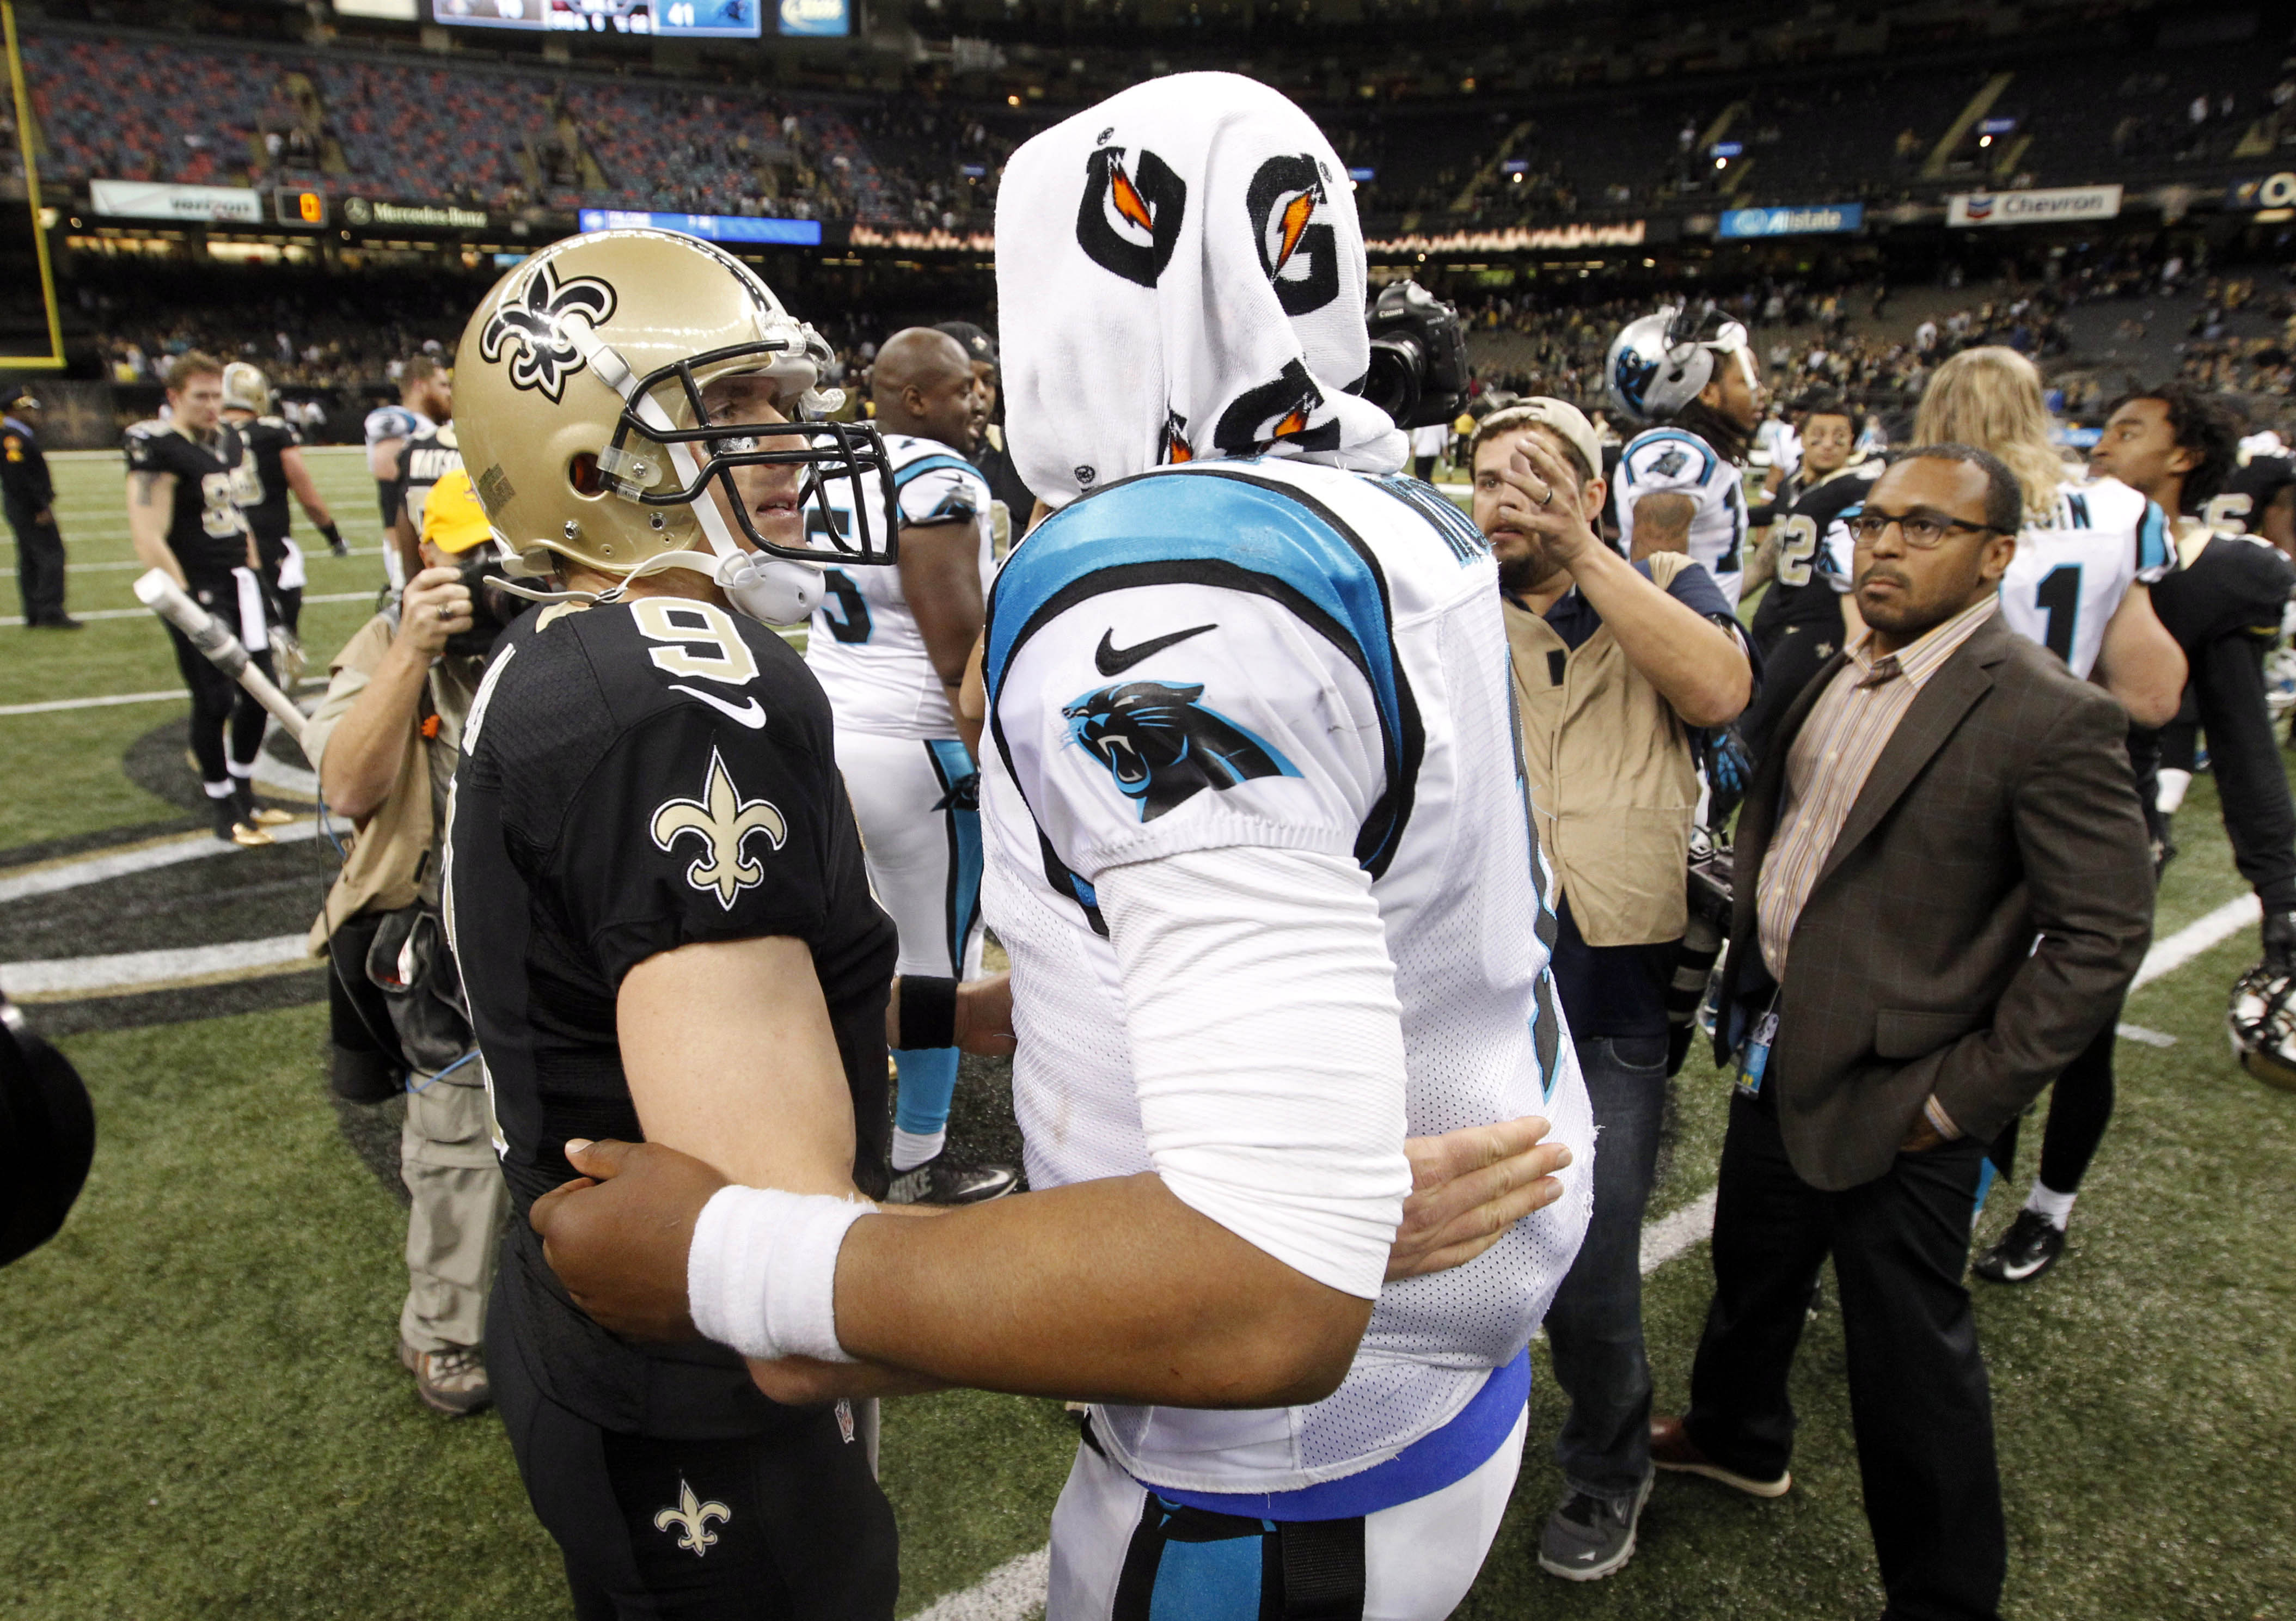 Nothing but love for you, homie. Two of the best QBs playing today.